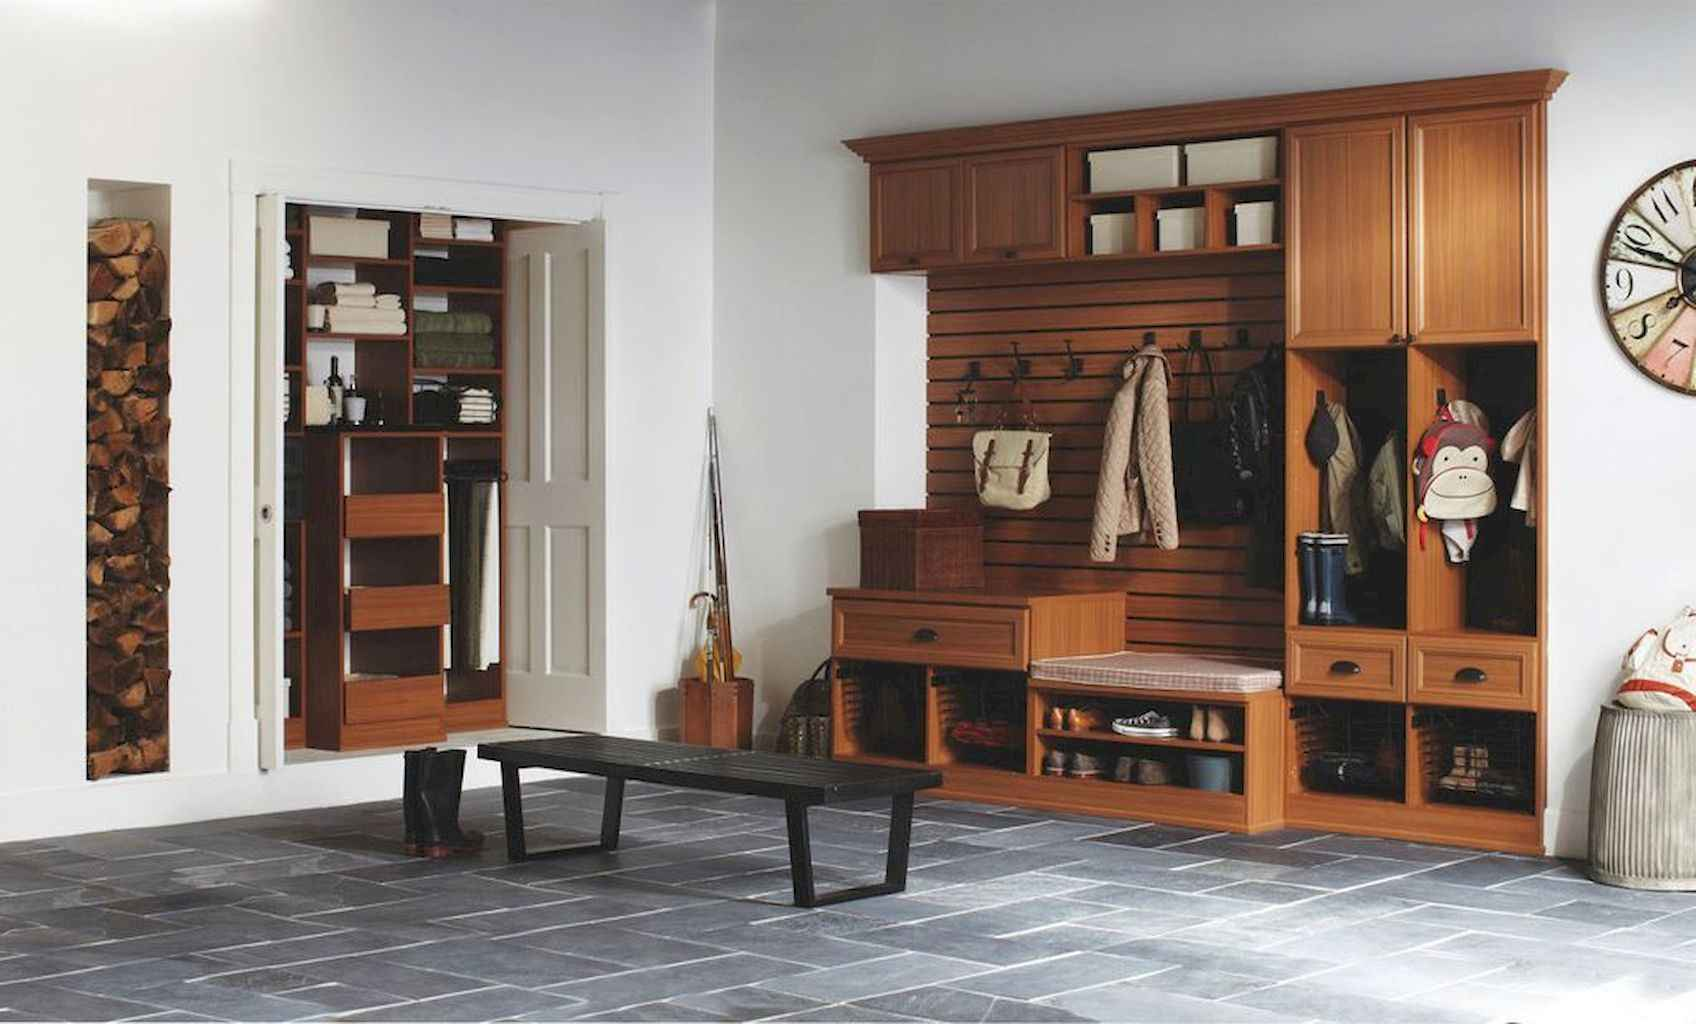 65 Cool Mudroom Design Ideas and Remodel (49)